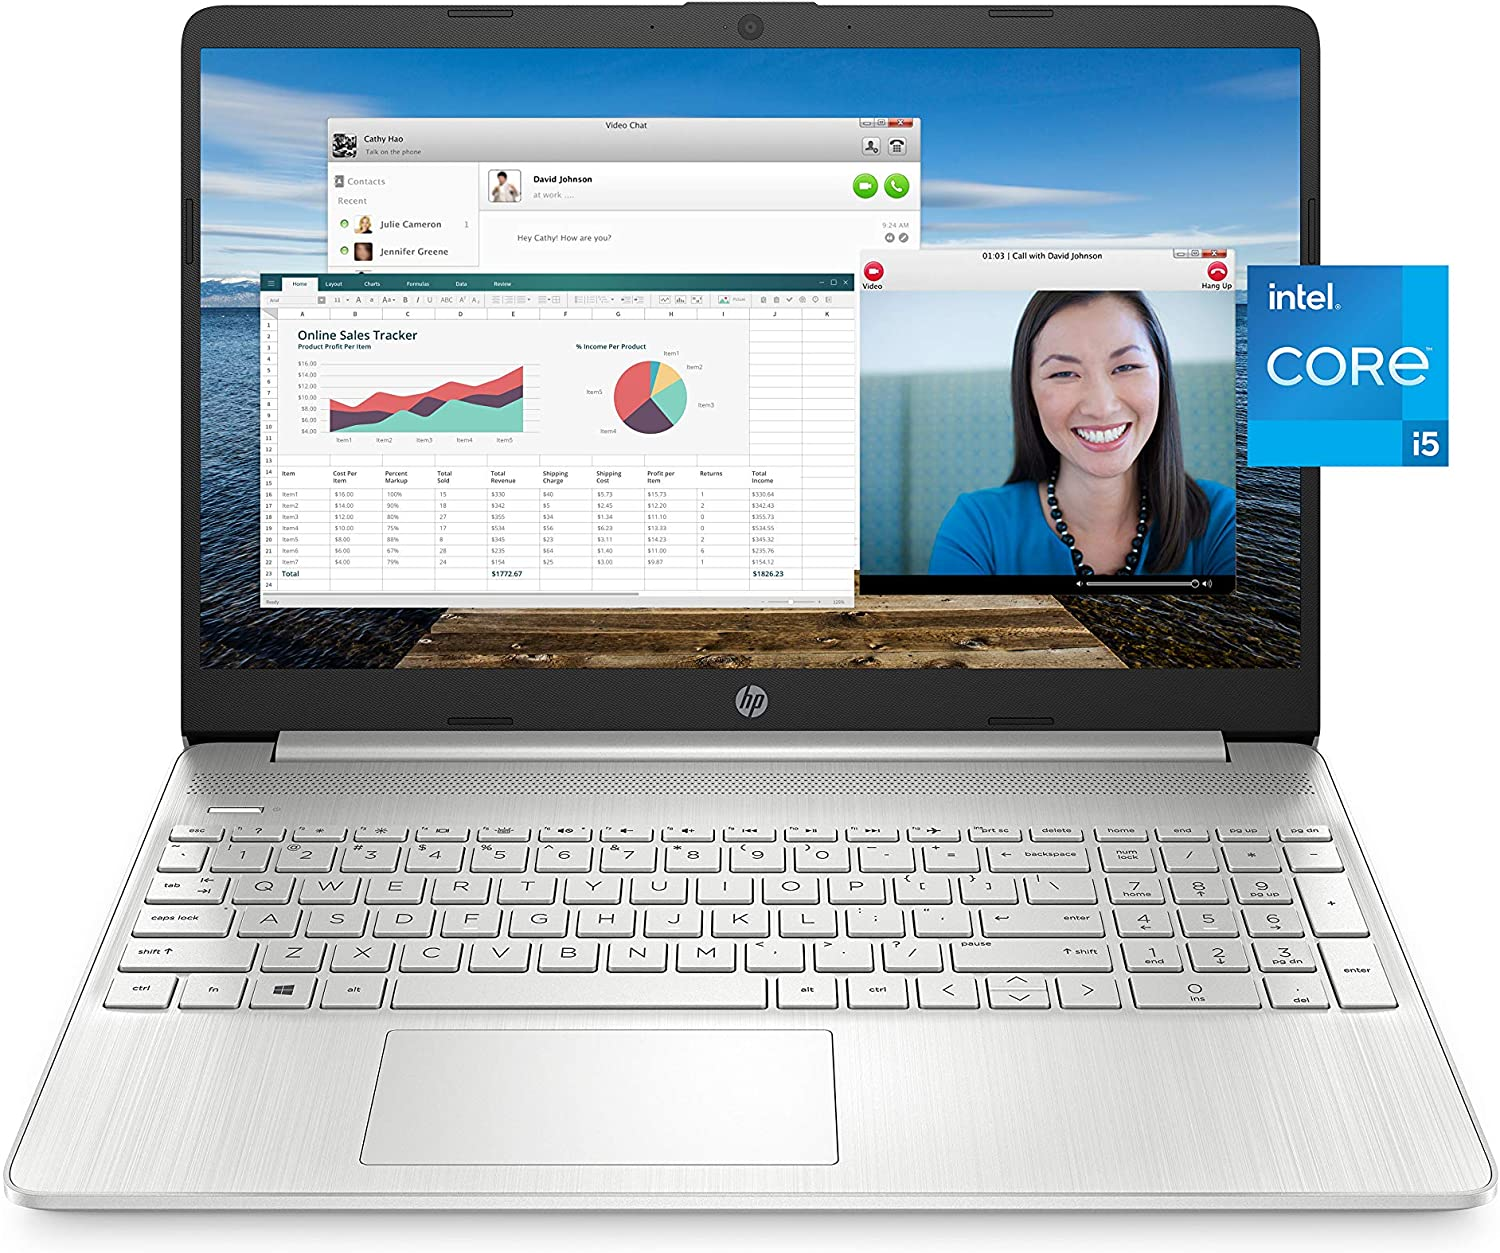 Best Laptop For Working From Home Under $500